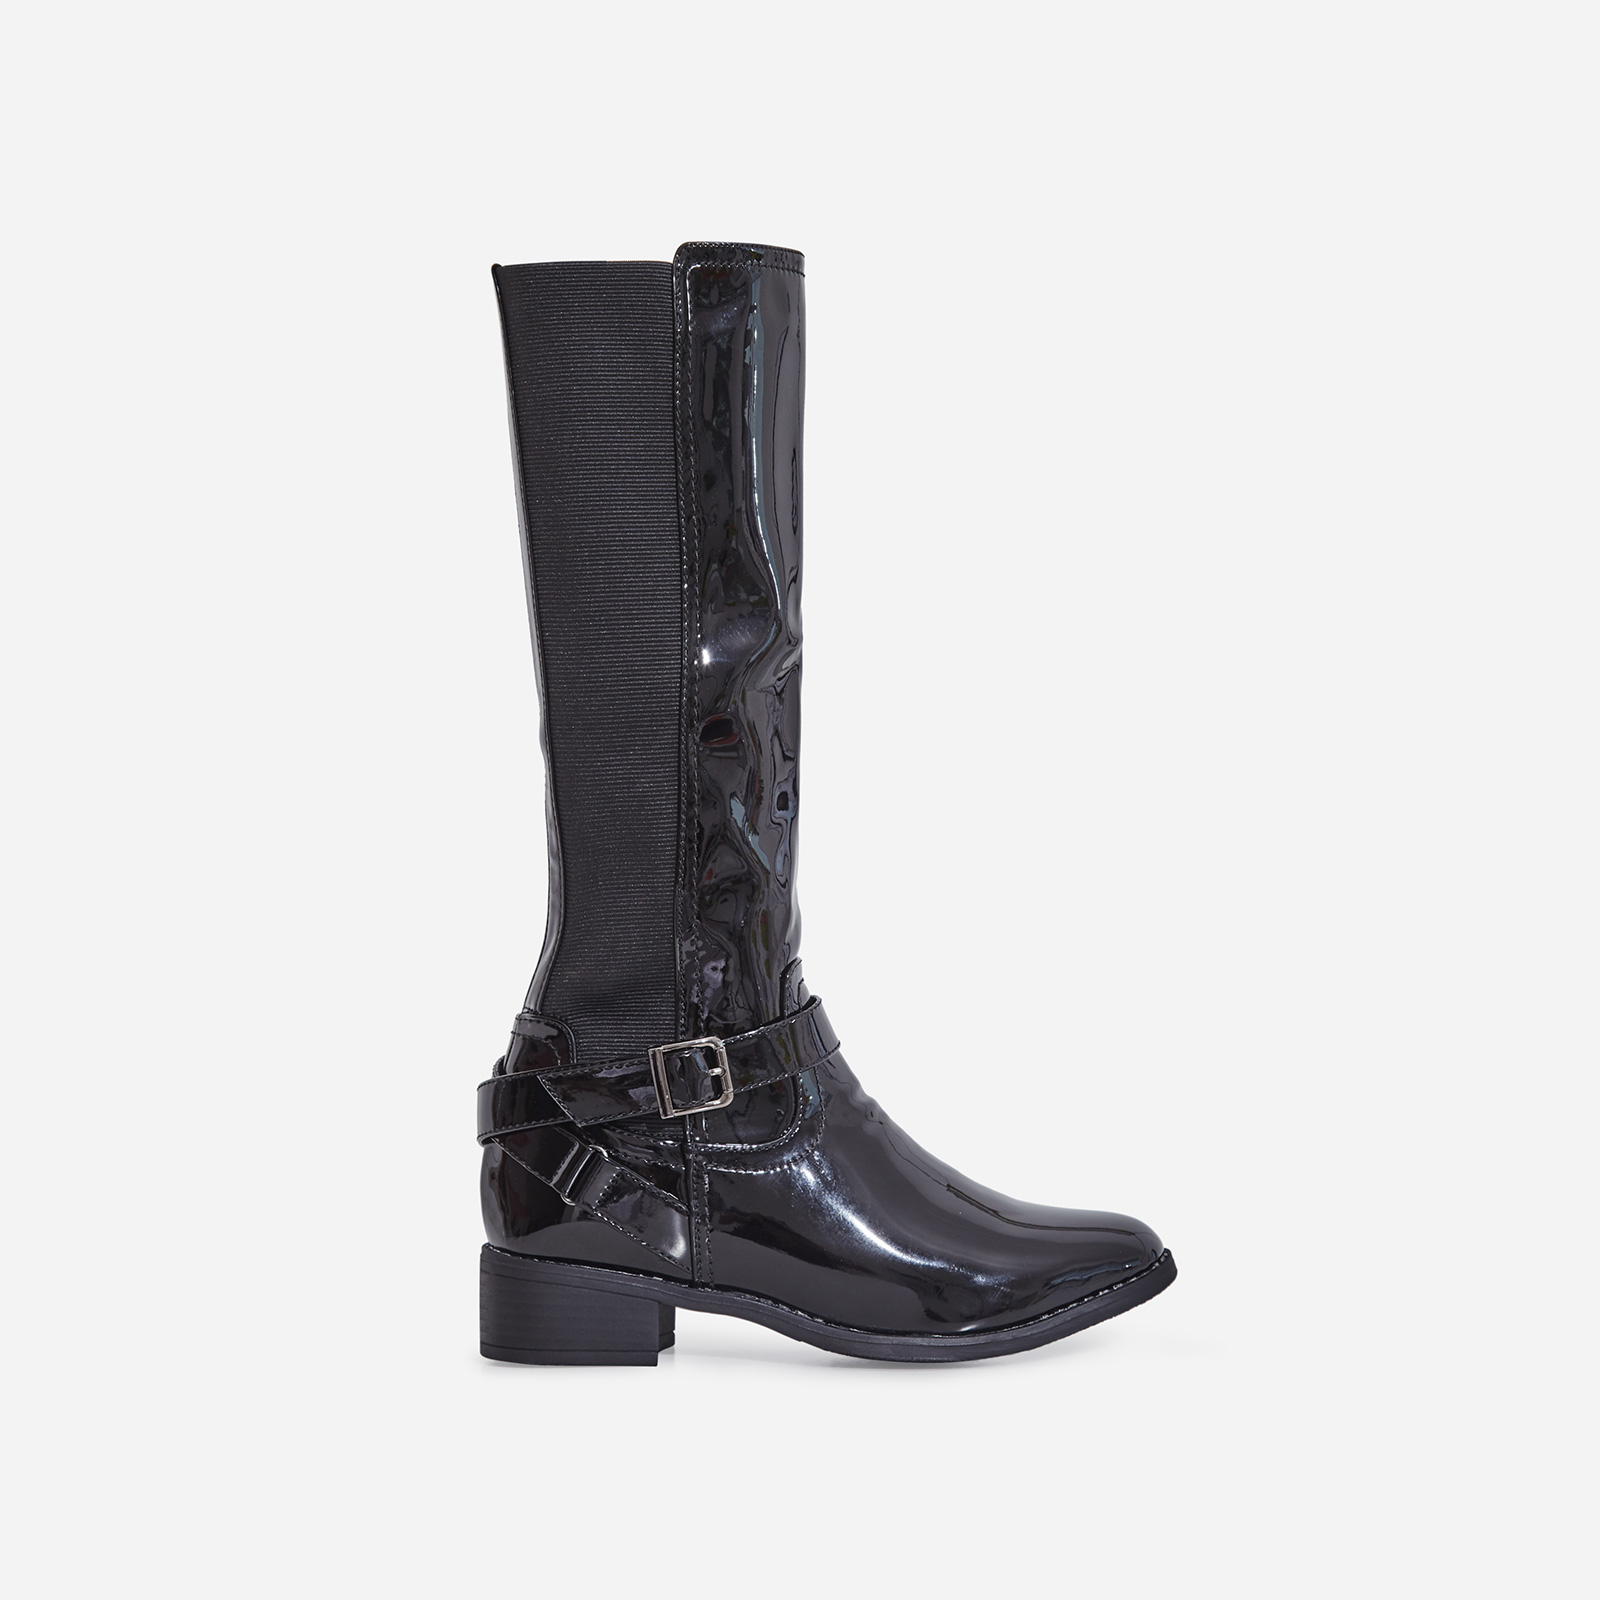 Rosie Buckle Detail Ankle Boot In Black Patent